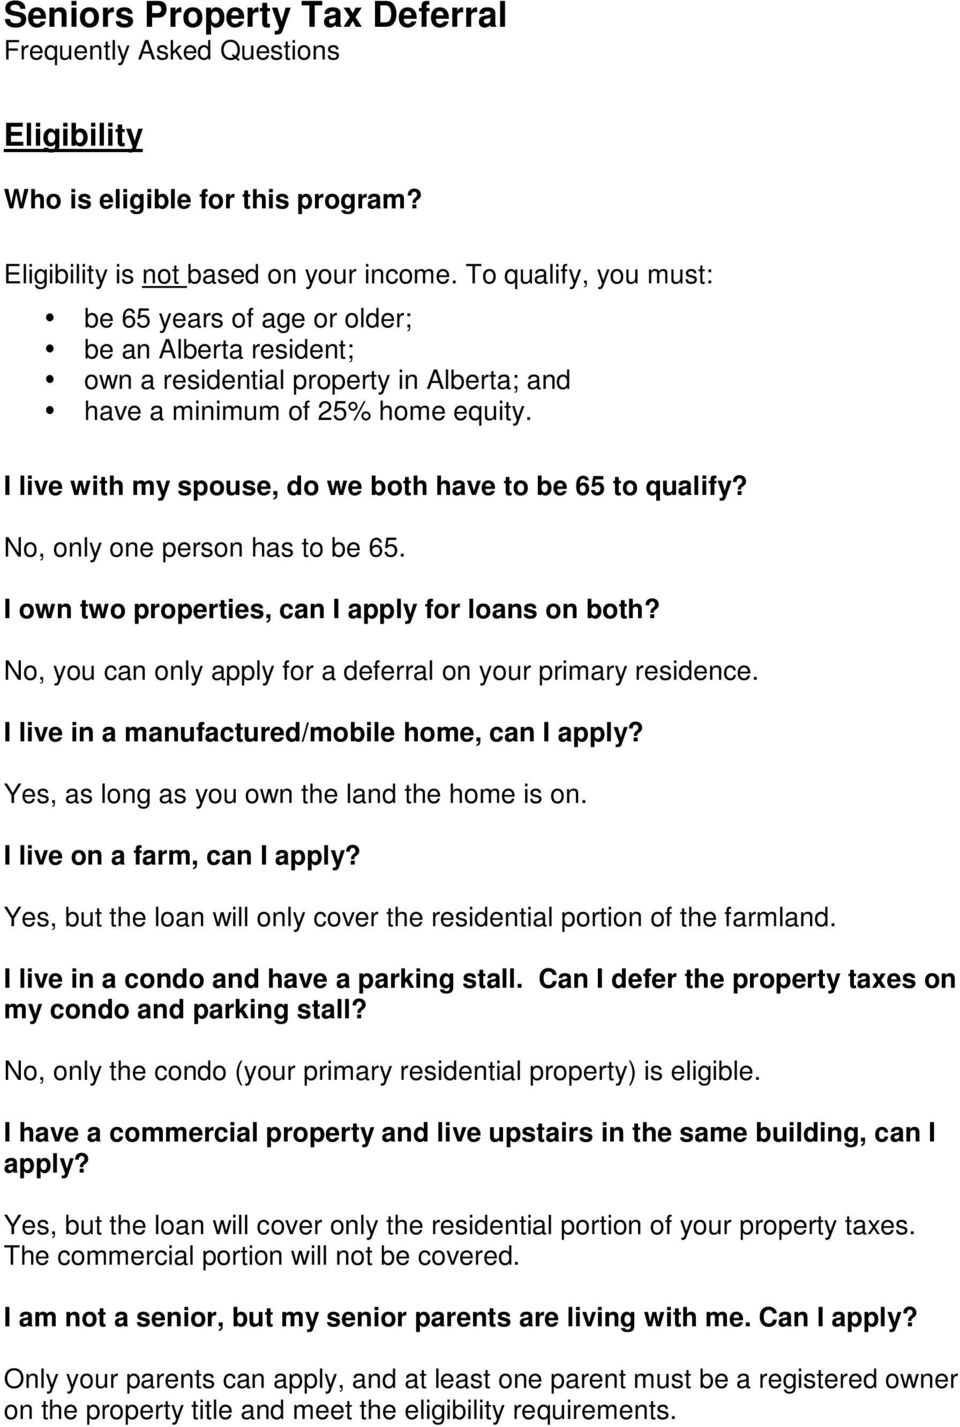 I live with my spouse, do we both have to be 65 to qualify? No, only one person has to be 65. I own two properties, can I apply for loans on both?